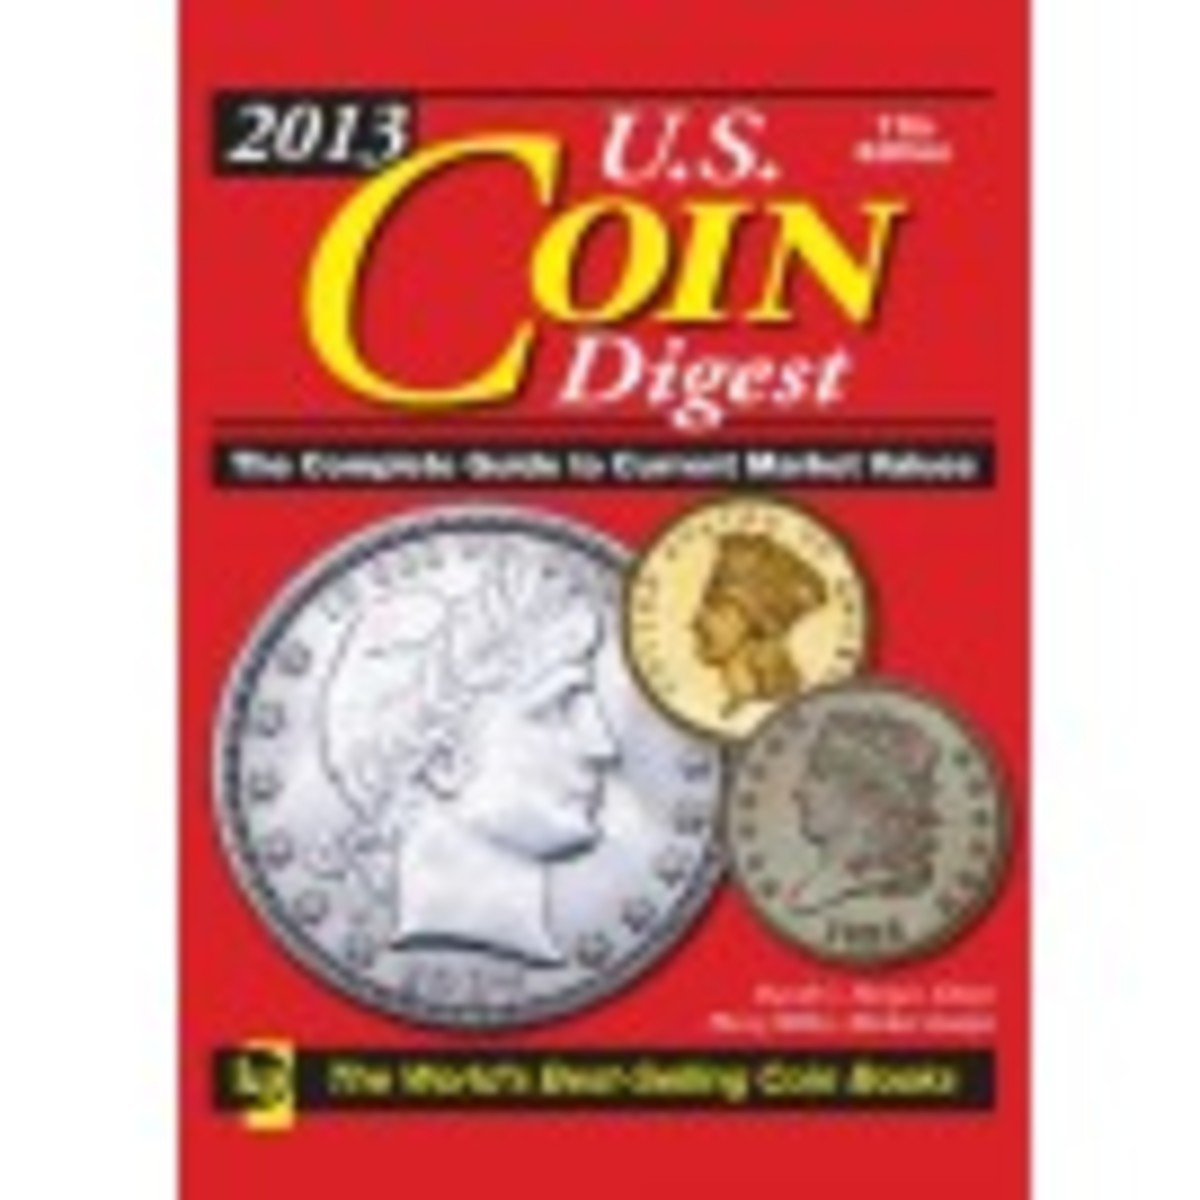 2013 U.S. Coin Digest, 11th Edition